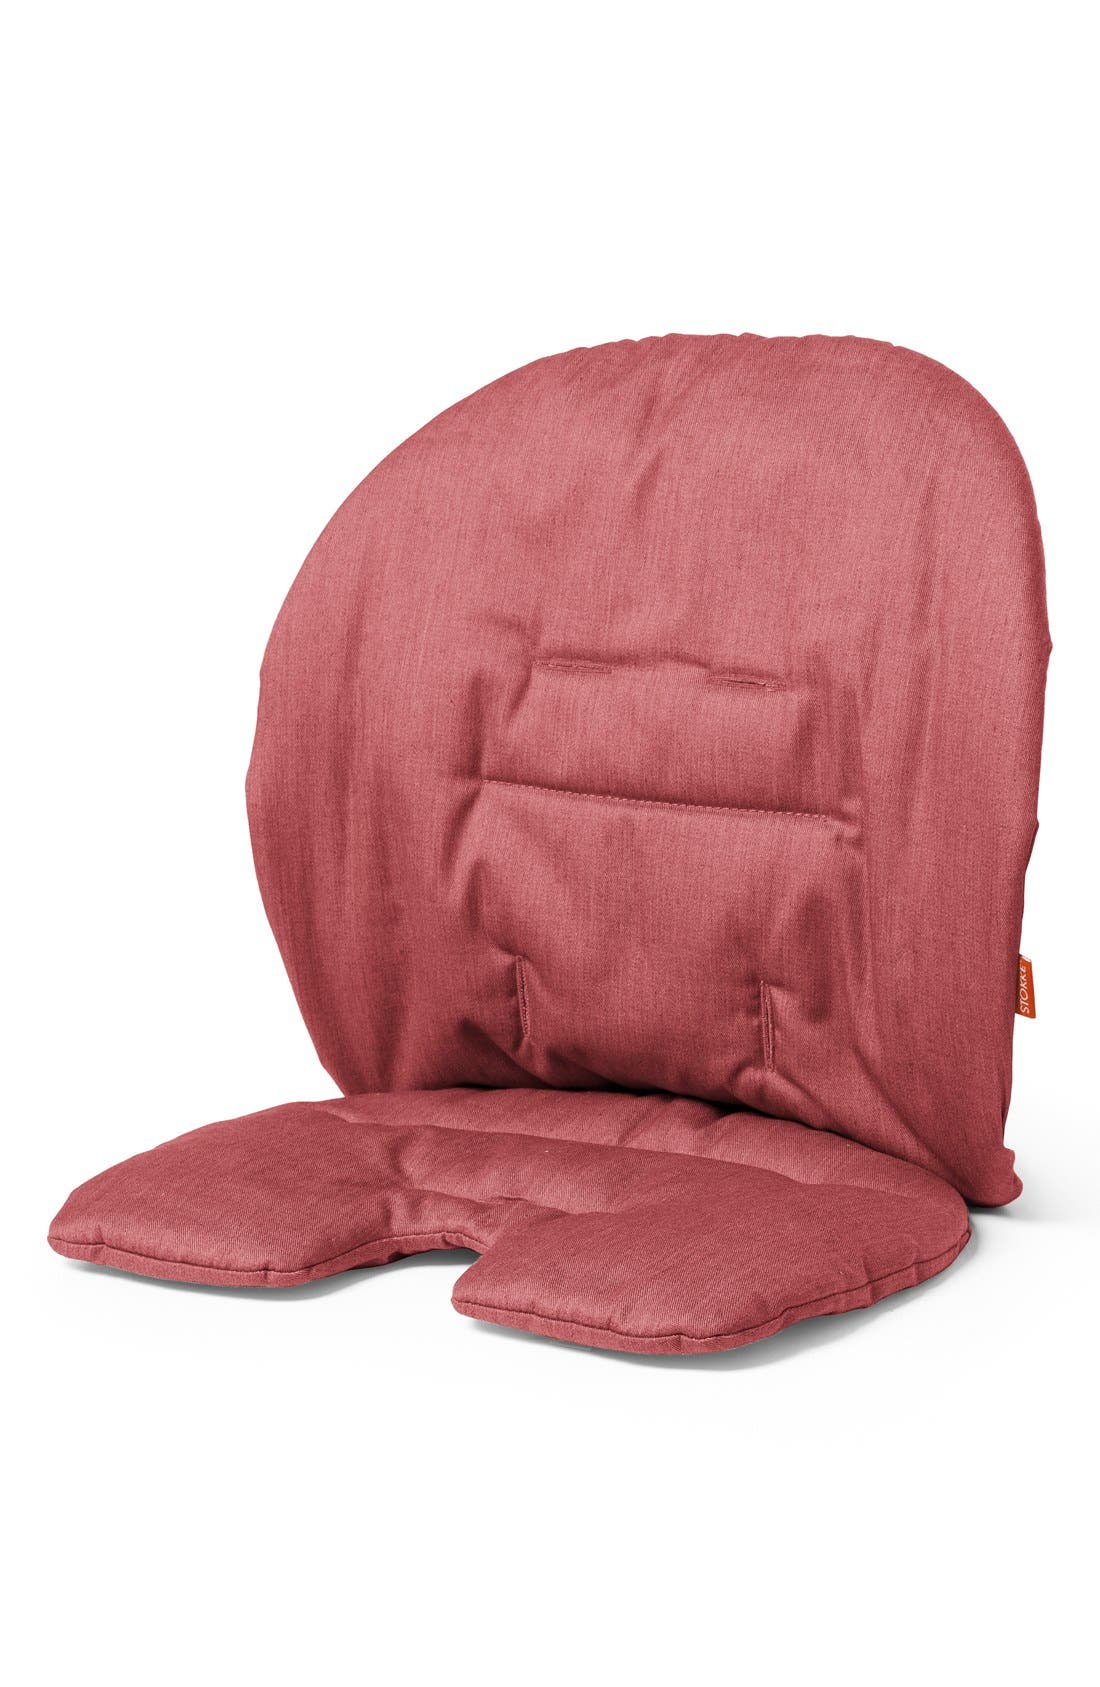 'Steps<sup>™</sup>' Seat Cushion,                             Main thumbnail 1, color,                             Red